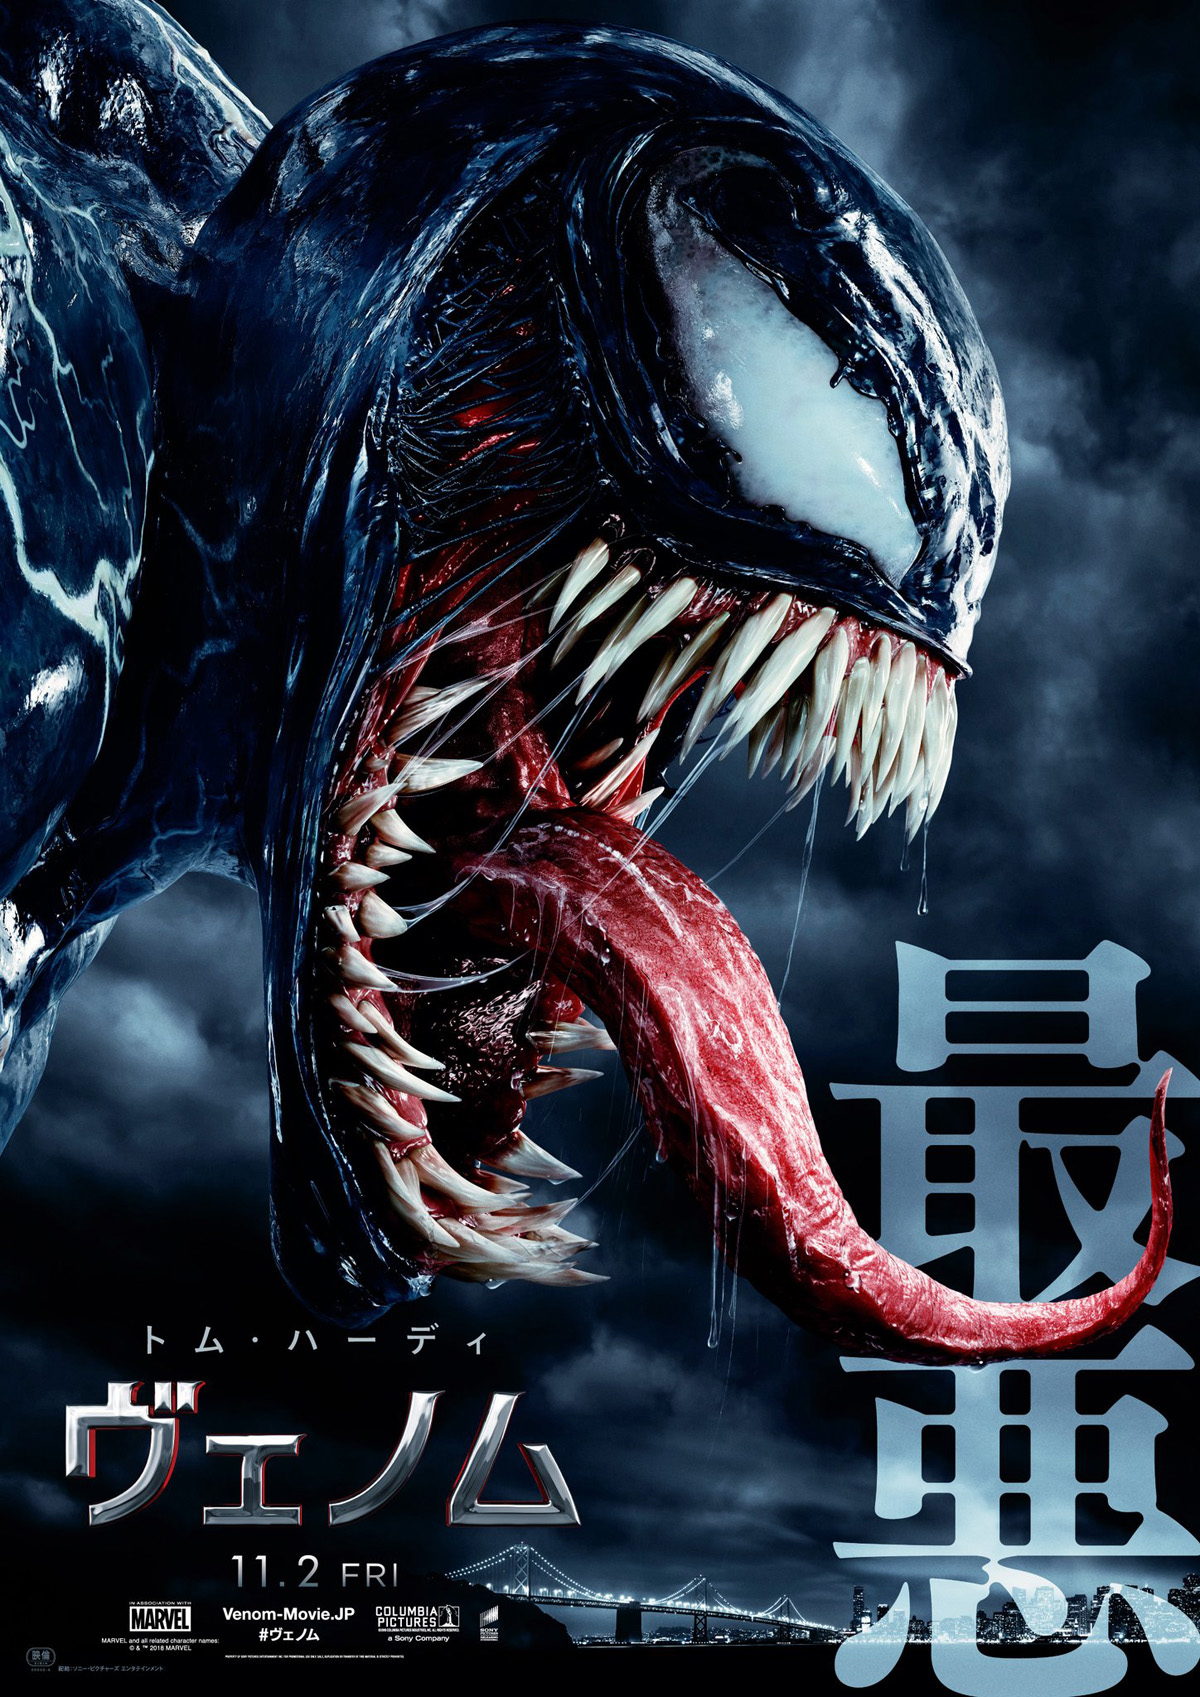 Venom 2018 archives - Venom hd wallpaper android ...